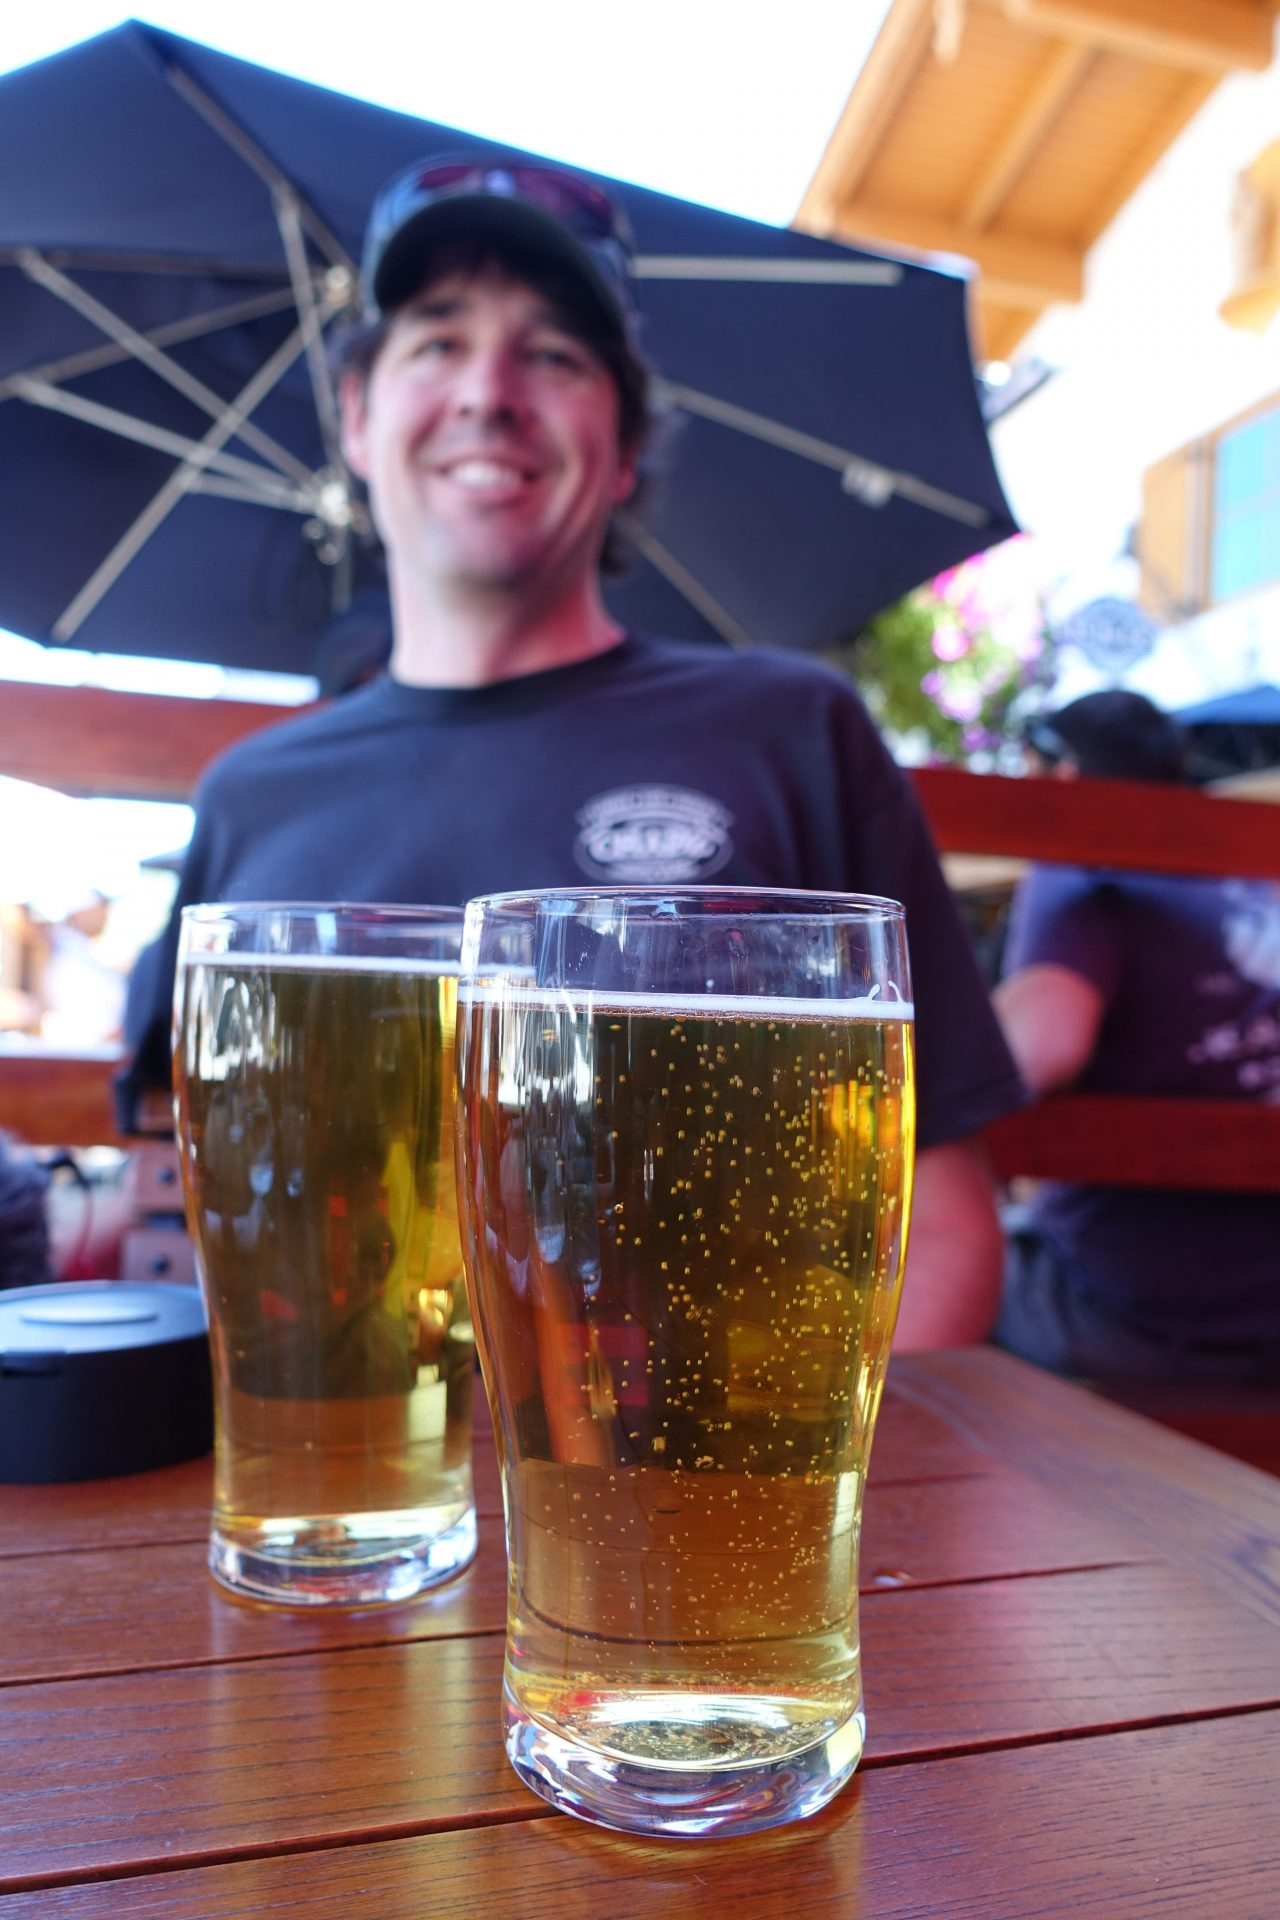 Highway 2 roadside attractions Beer at Sulla vida in Leavenworth, Washington -- beer tour.